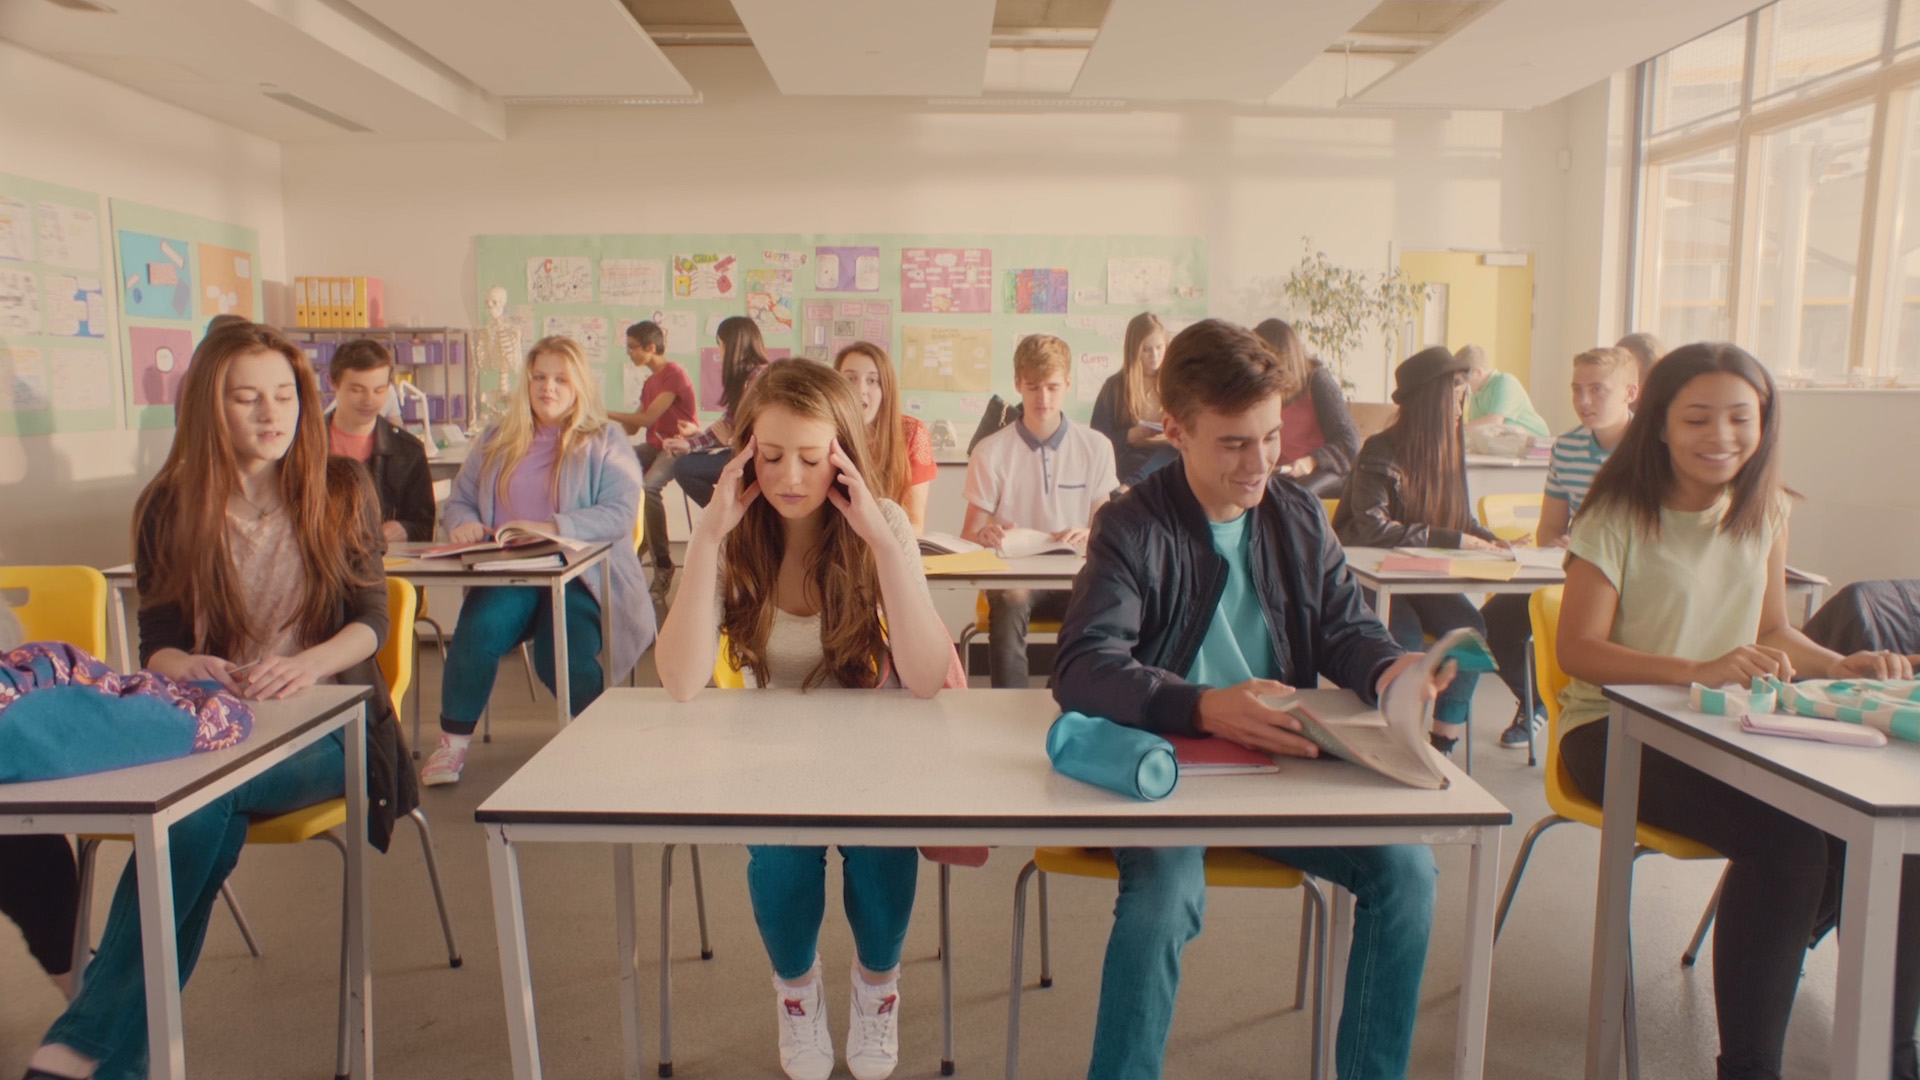 Video production still of Barclays Beat Bullying film by Vismedia